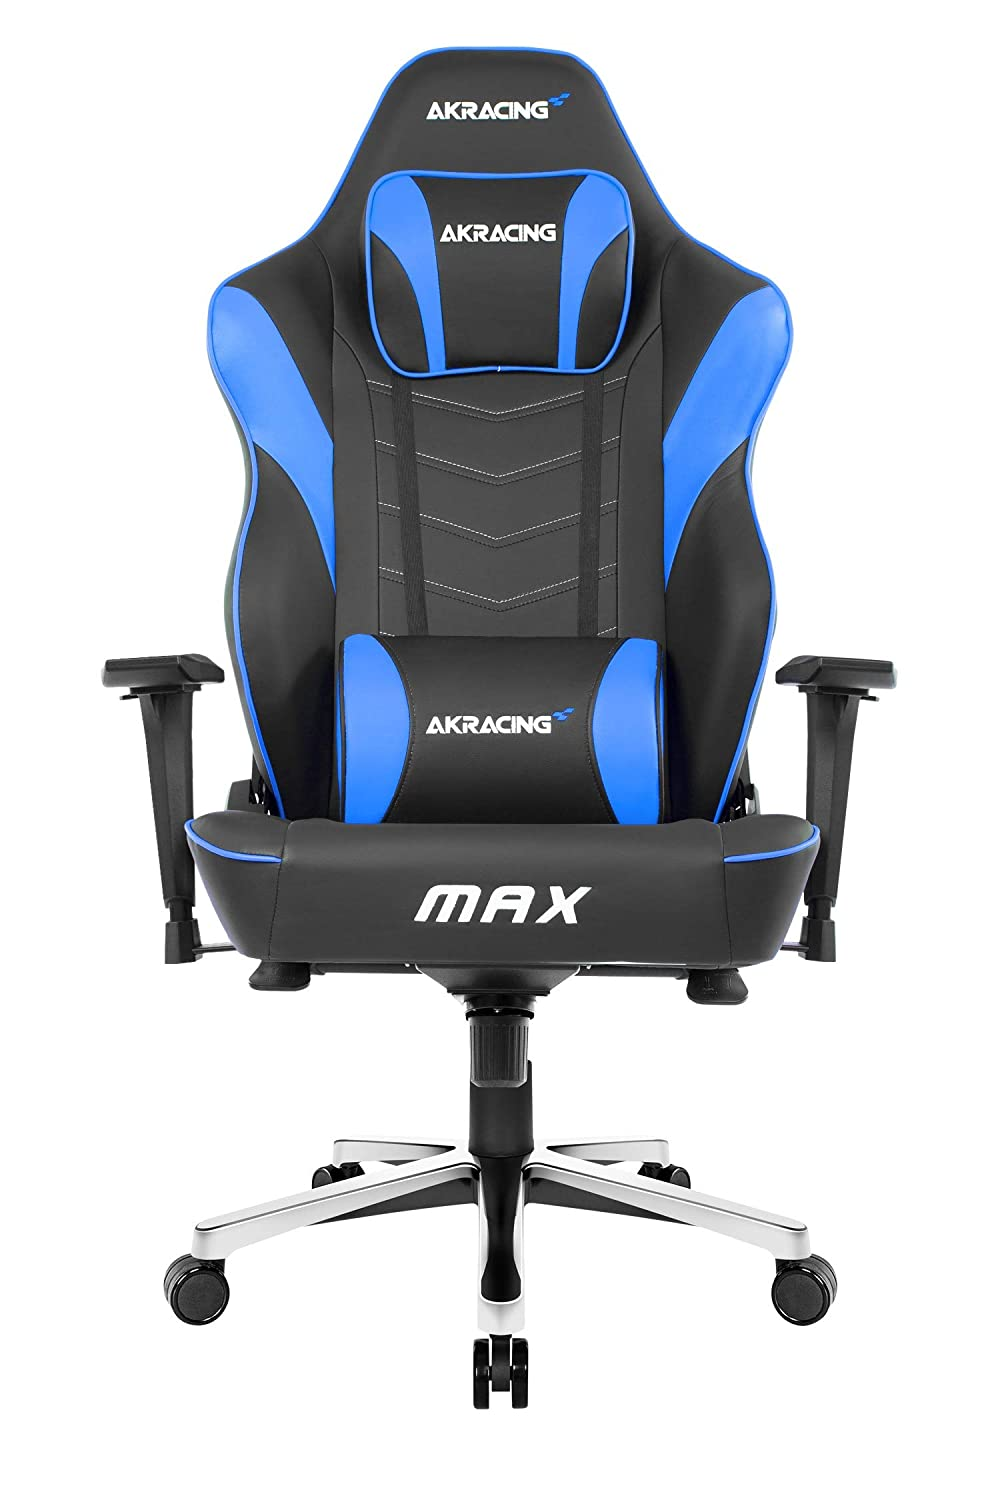 AKRacing Masters Series Max Gaming Chair with Wide Flat Seat, 400 Lbs Weight Limit, Rocker and Seat Height Adjustment Mechanisms with 5/10 Warranty, Blue - PC; Mac; Linux